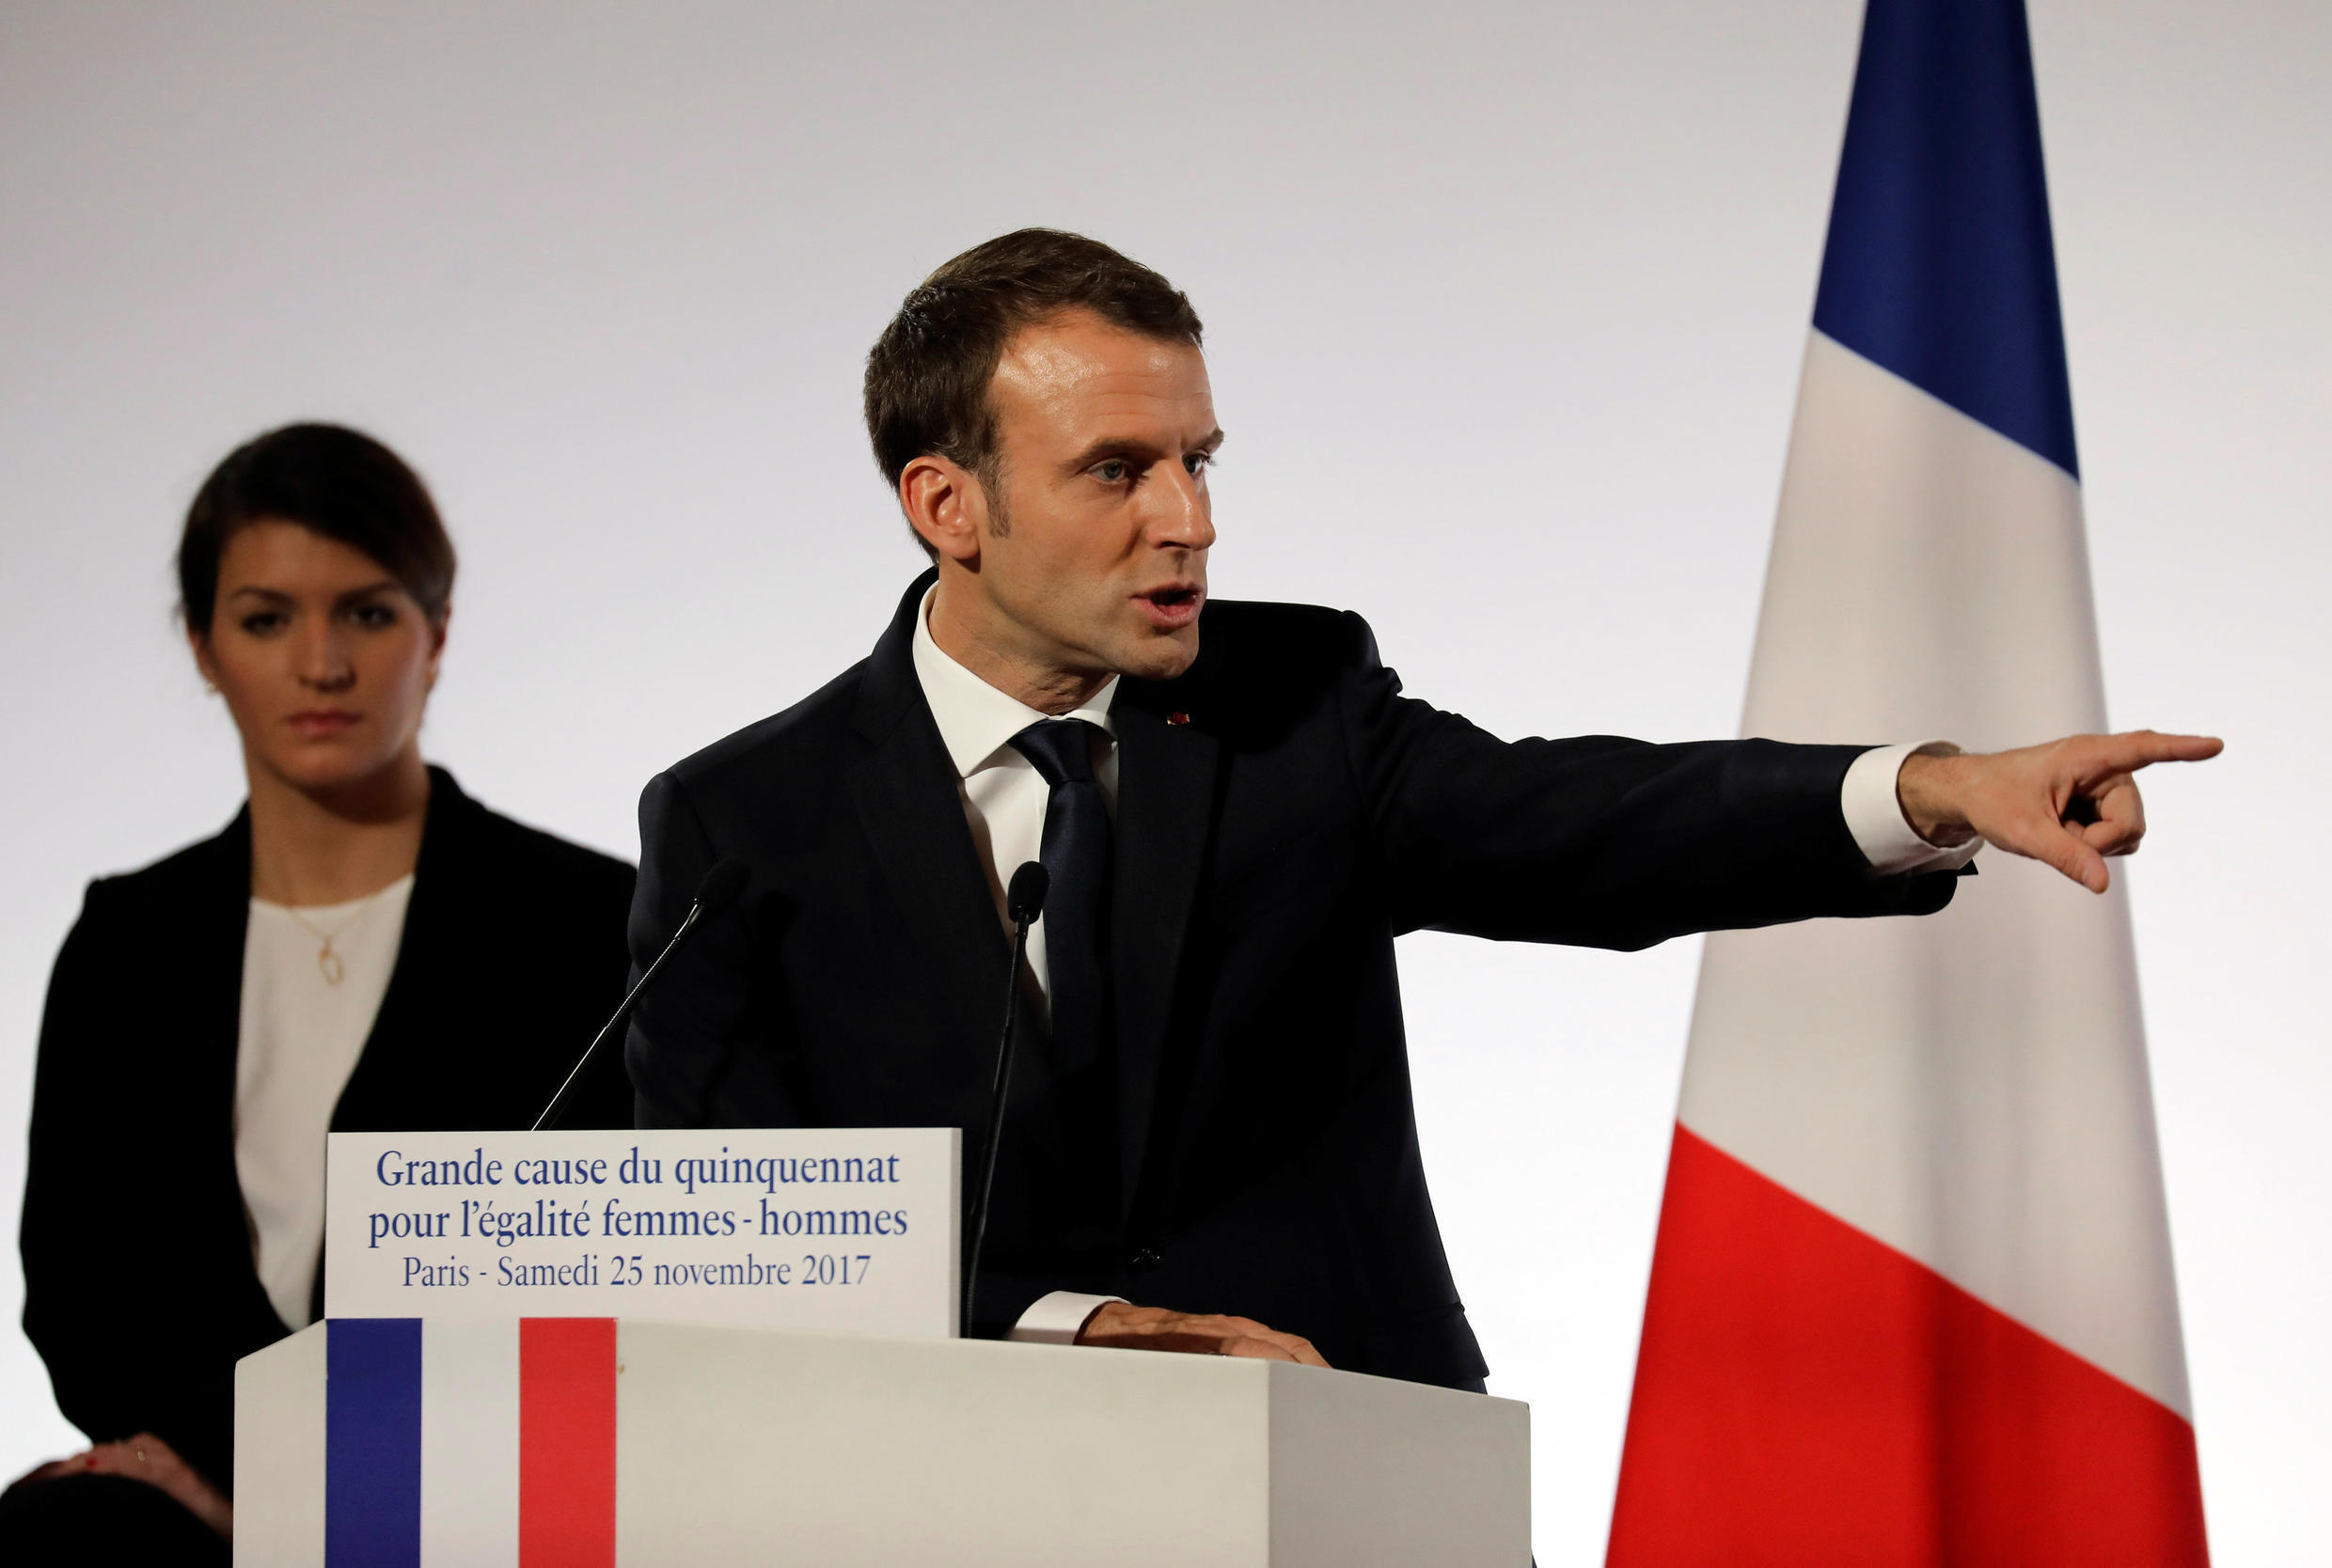 French President Emmanuel Macron delivers a speech on the International Day for the Elimination of Violence Against Women with Women's Rights Minister Marlène Schiappa listening